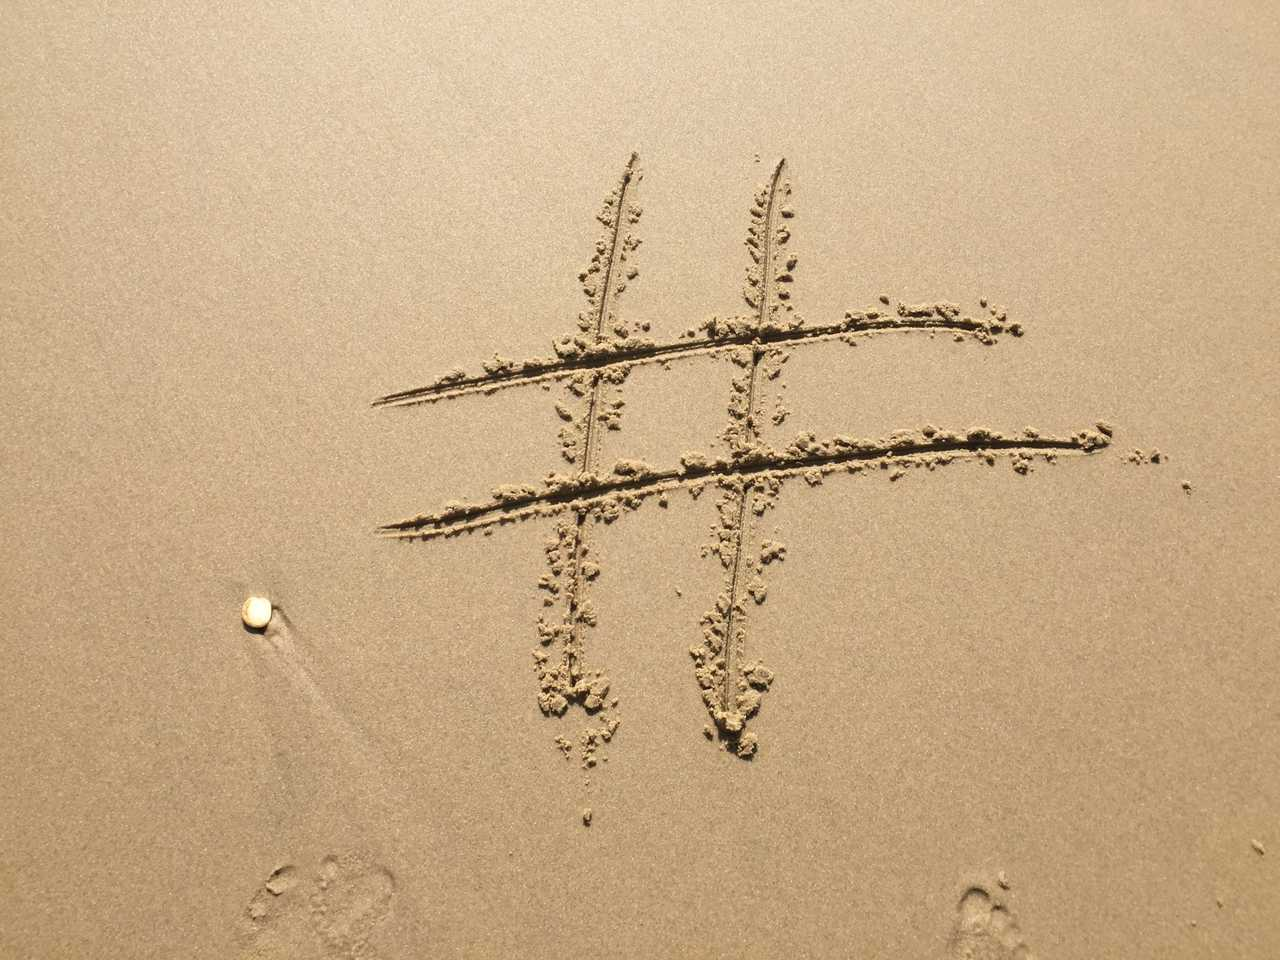 Hashtag drawn in the sand